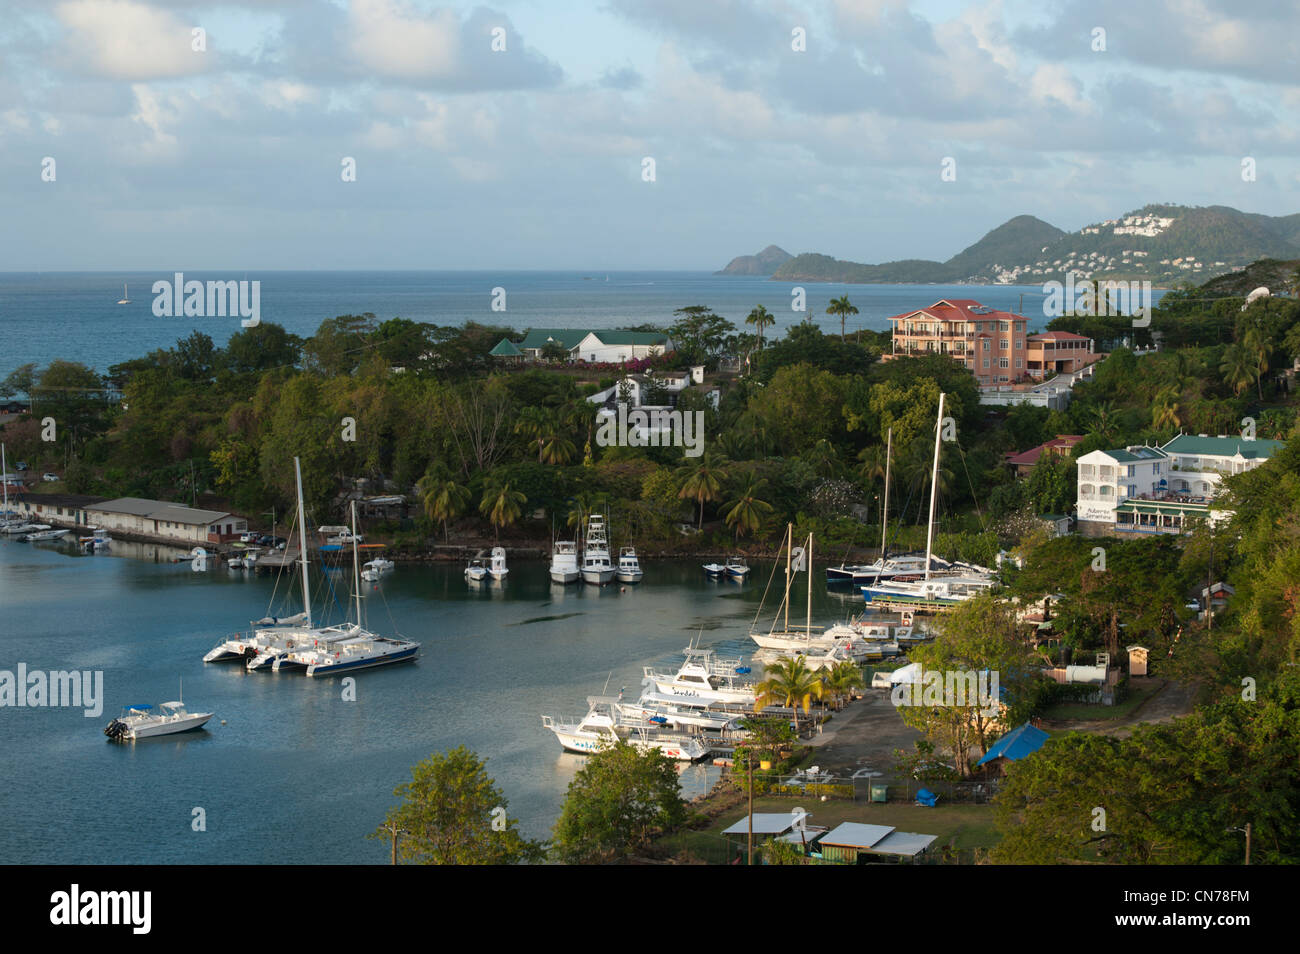 View over the harbour, Castries, St. Lucia - Stock Image